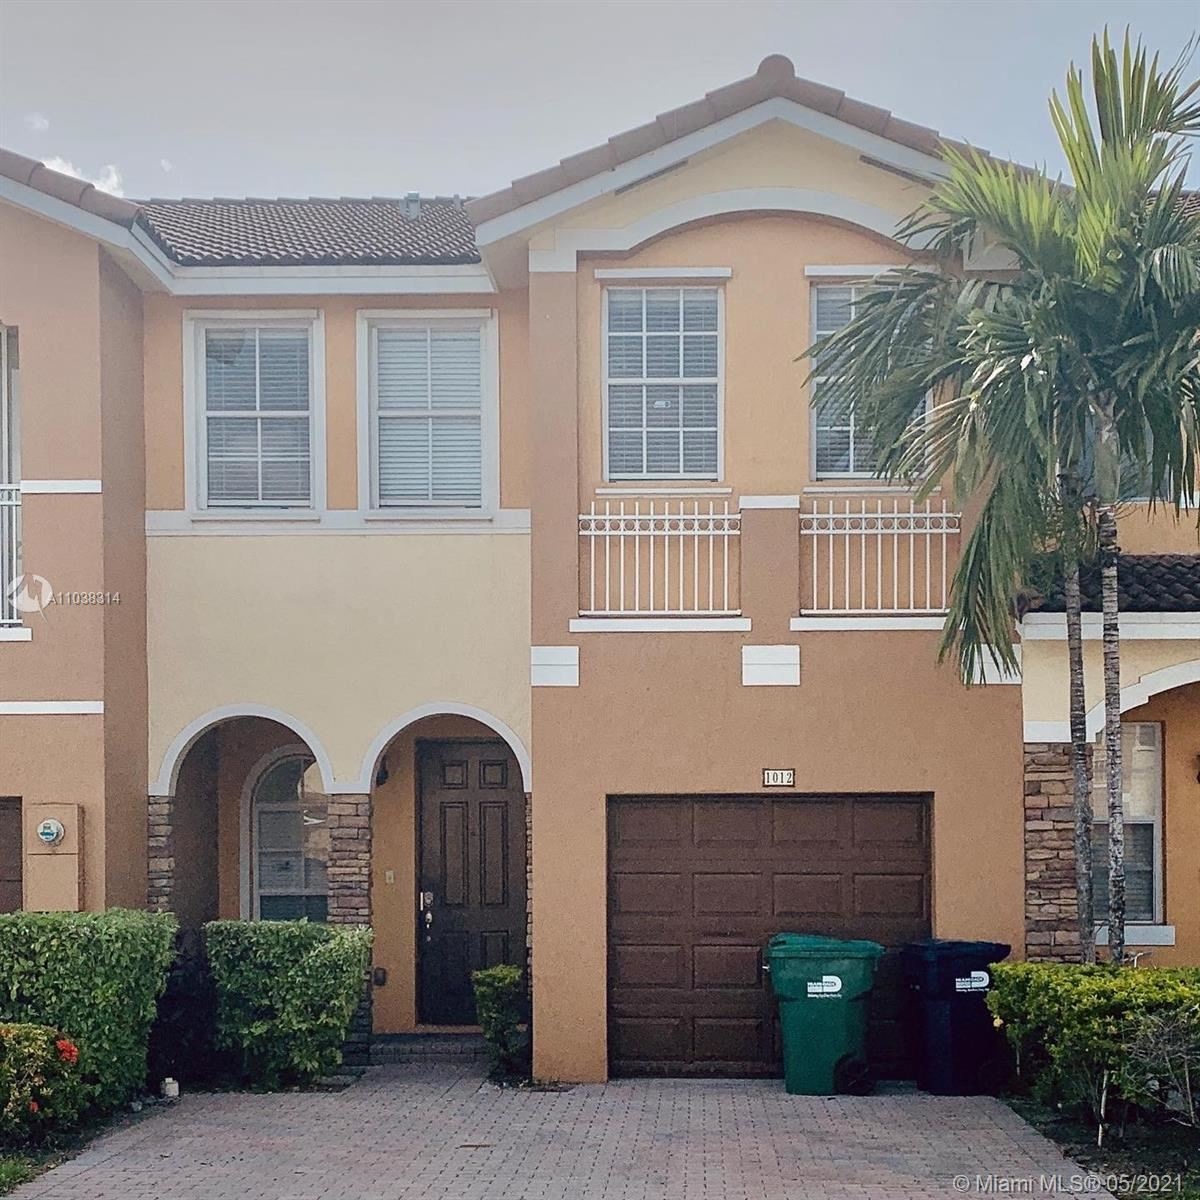 1012 NW 102nd Pl, Miami, FL 33172 - #: A11038314